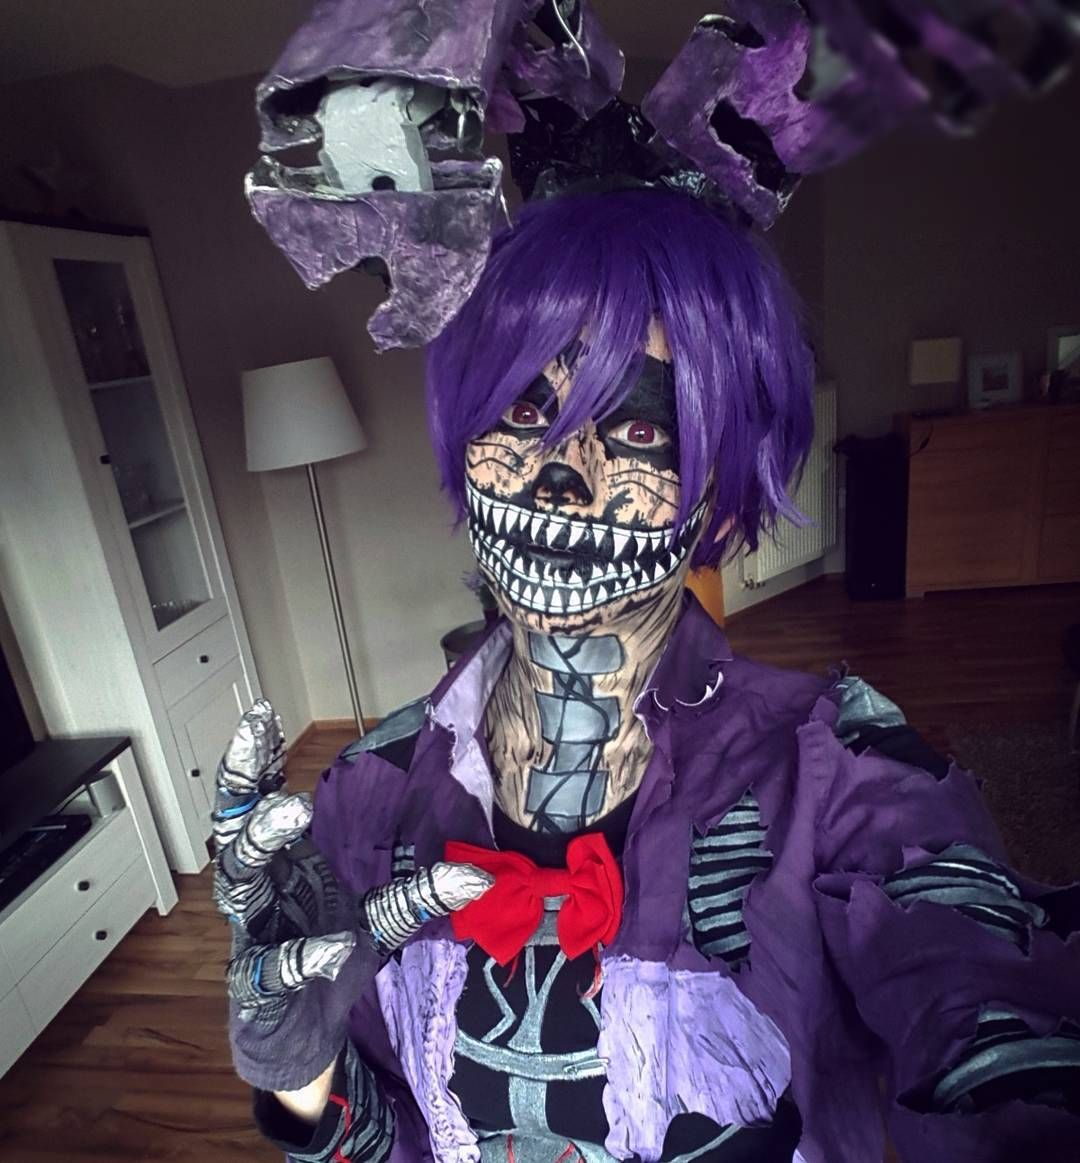 F fnaf bonnie costume for sale - Nightmare Bonnie Cosplay By Milchwoman Not In The Fnaf Fandom But This Is Freaking Amazing Makeup Step Night